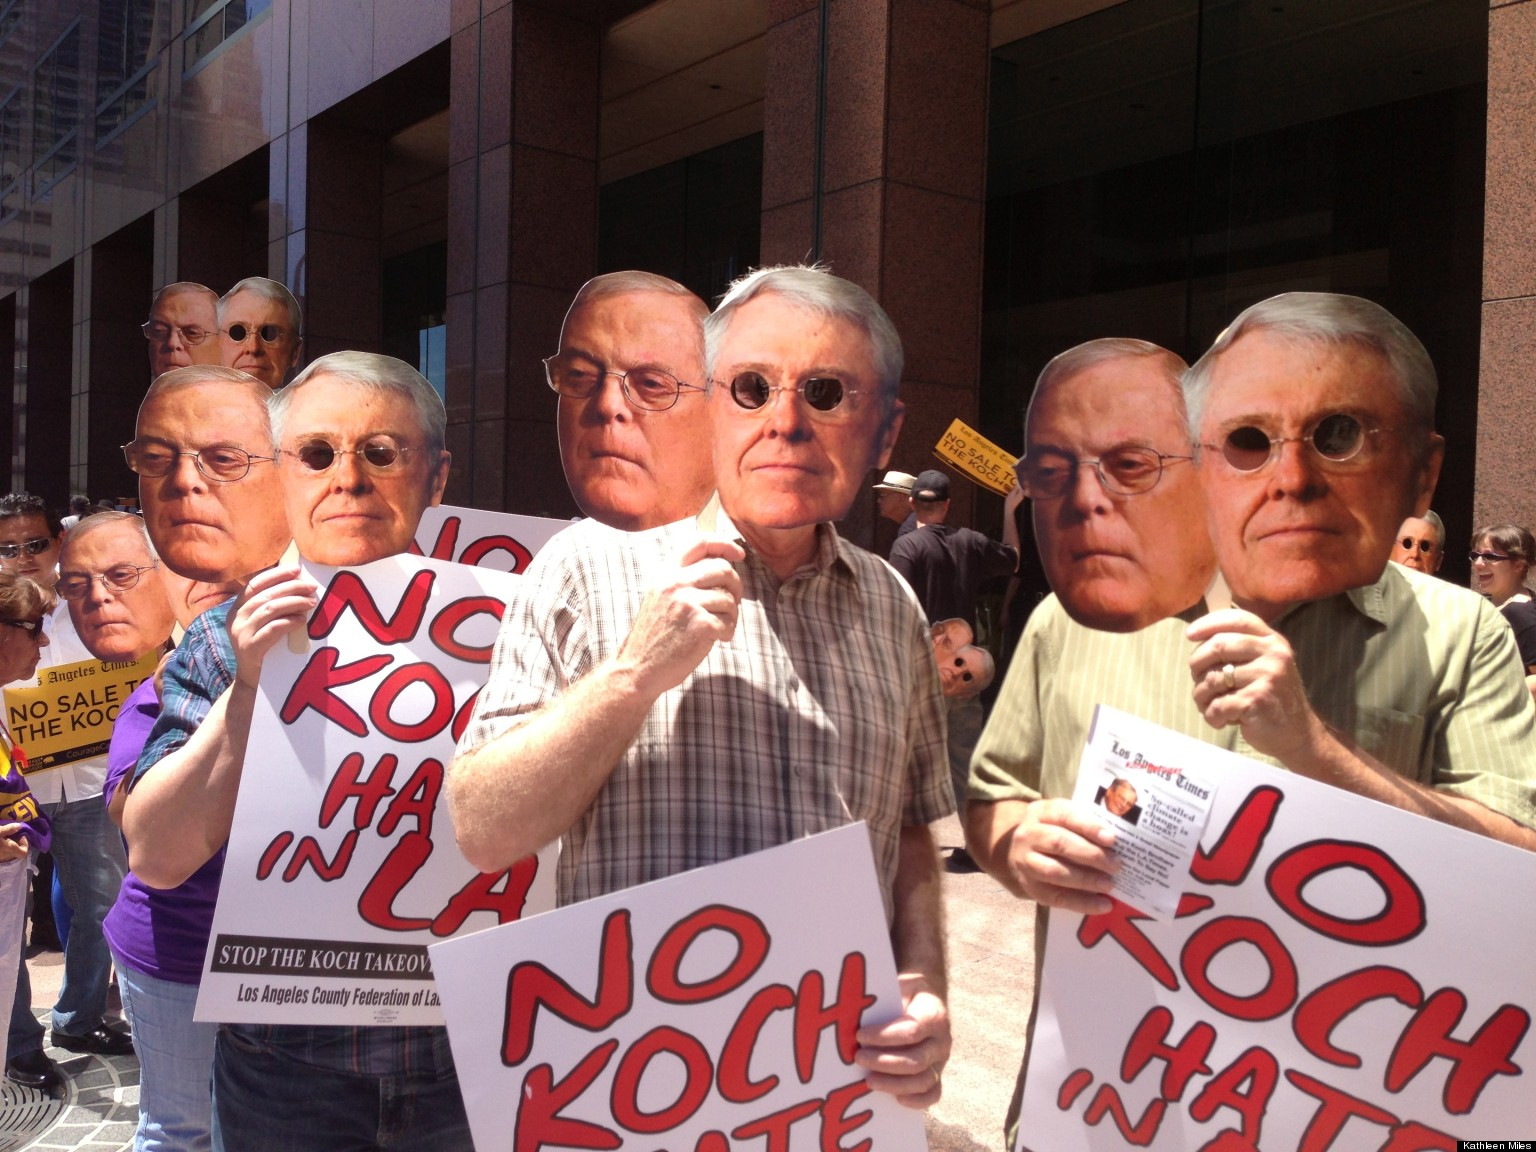 Hundreds Protest Koch Brothers Buying LA Times